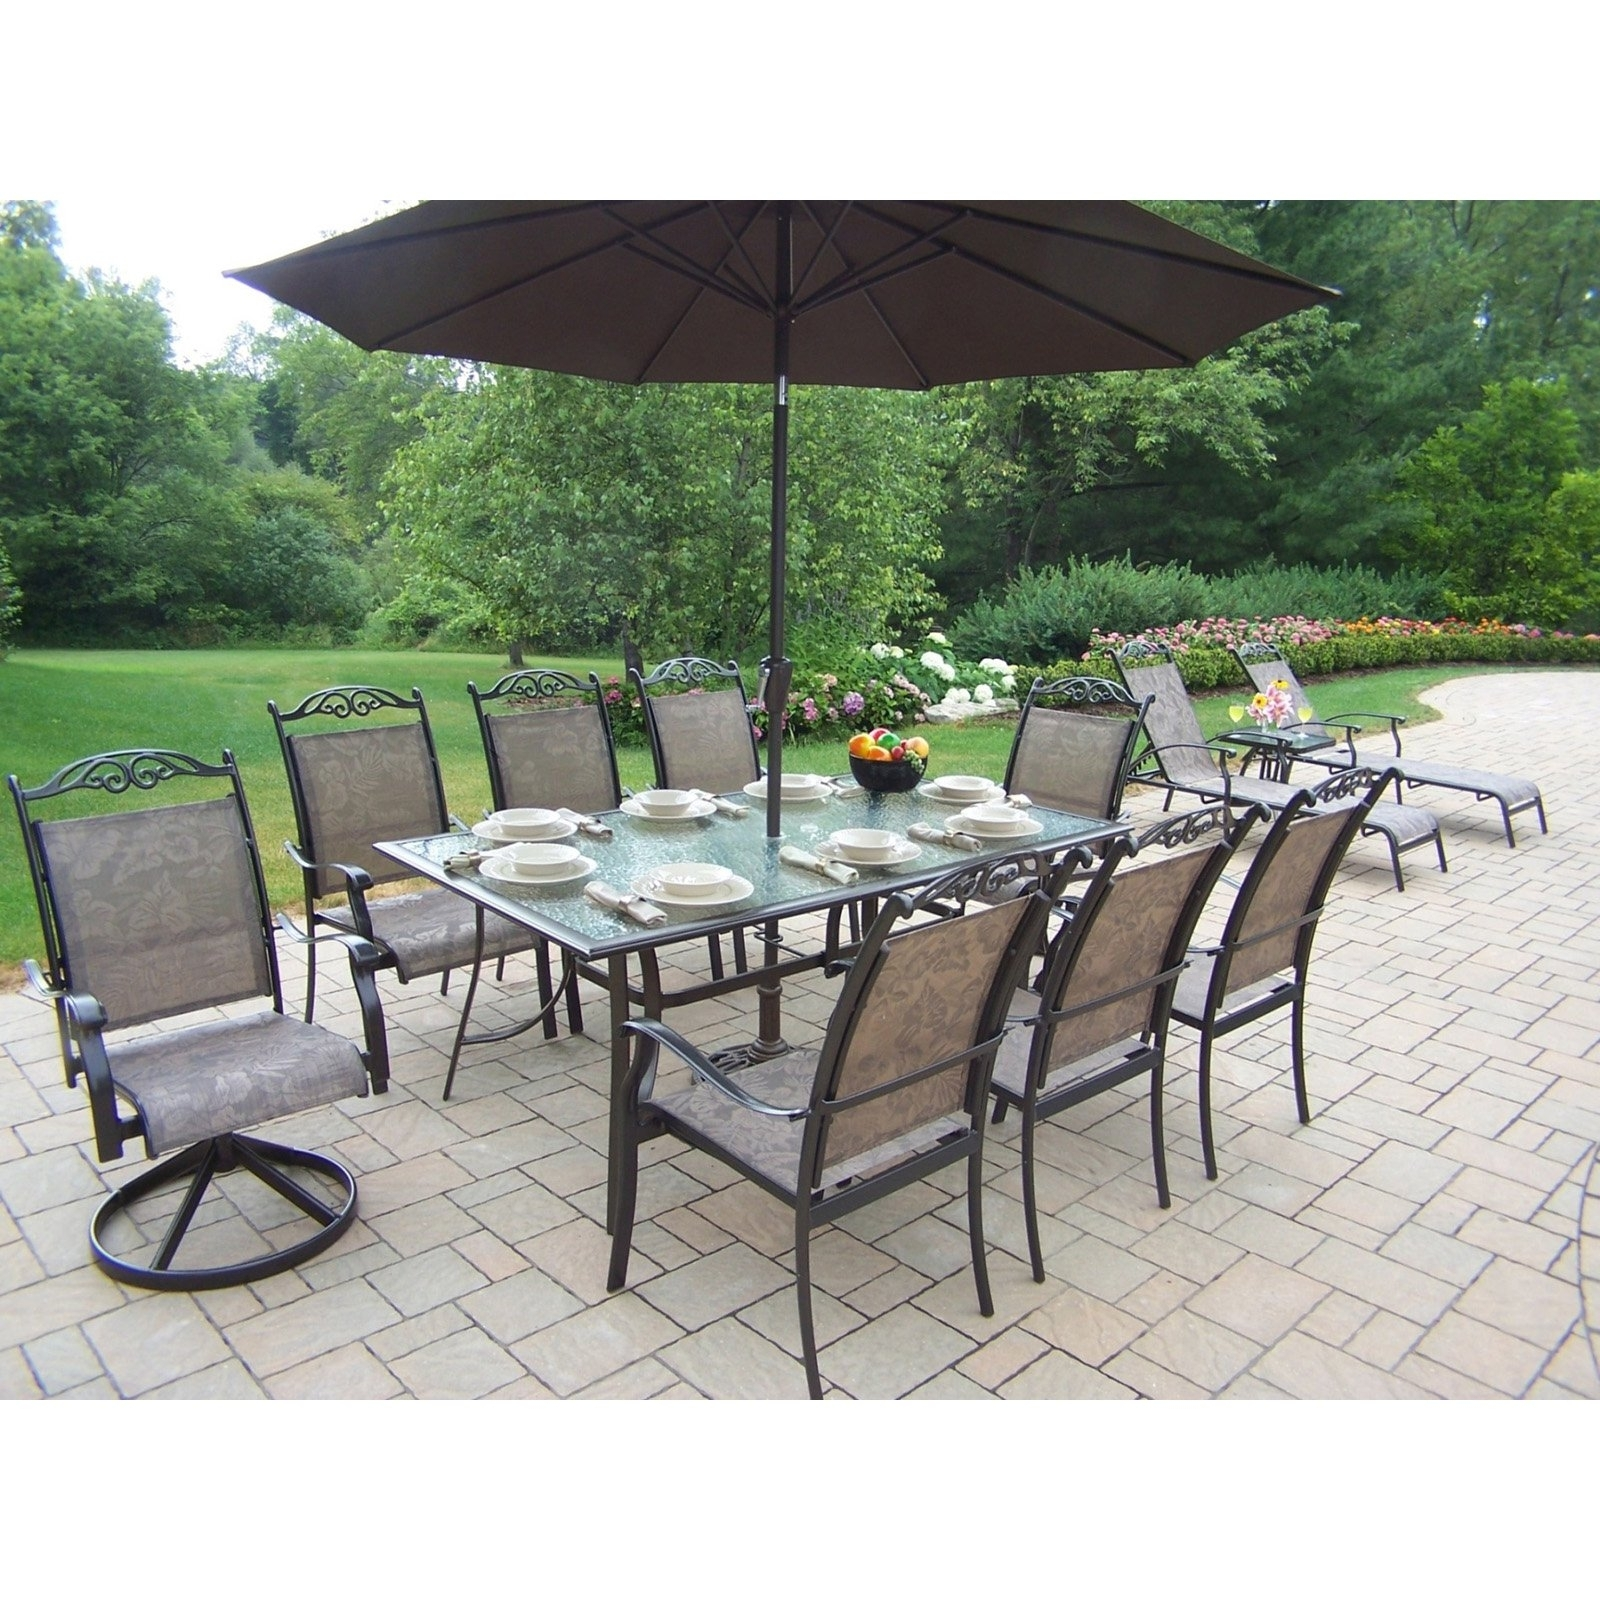 Most Recently Released Patio Furniture Walmart Patio Furniture Sets Patio Dining Luxury Regarding Patio Furniture Sets With Umbrellas (View 12 of 20)